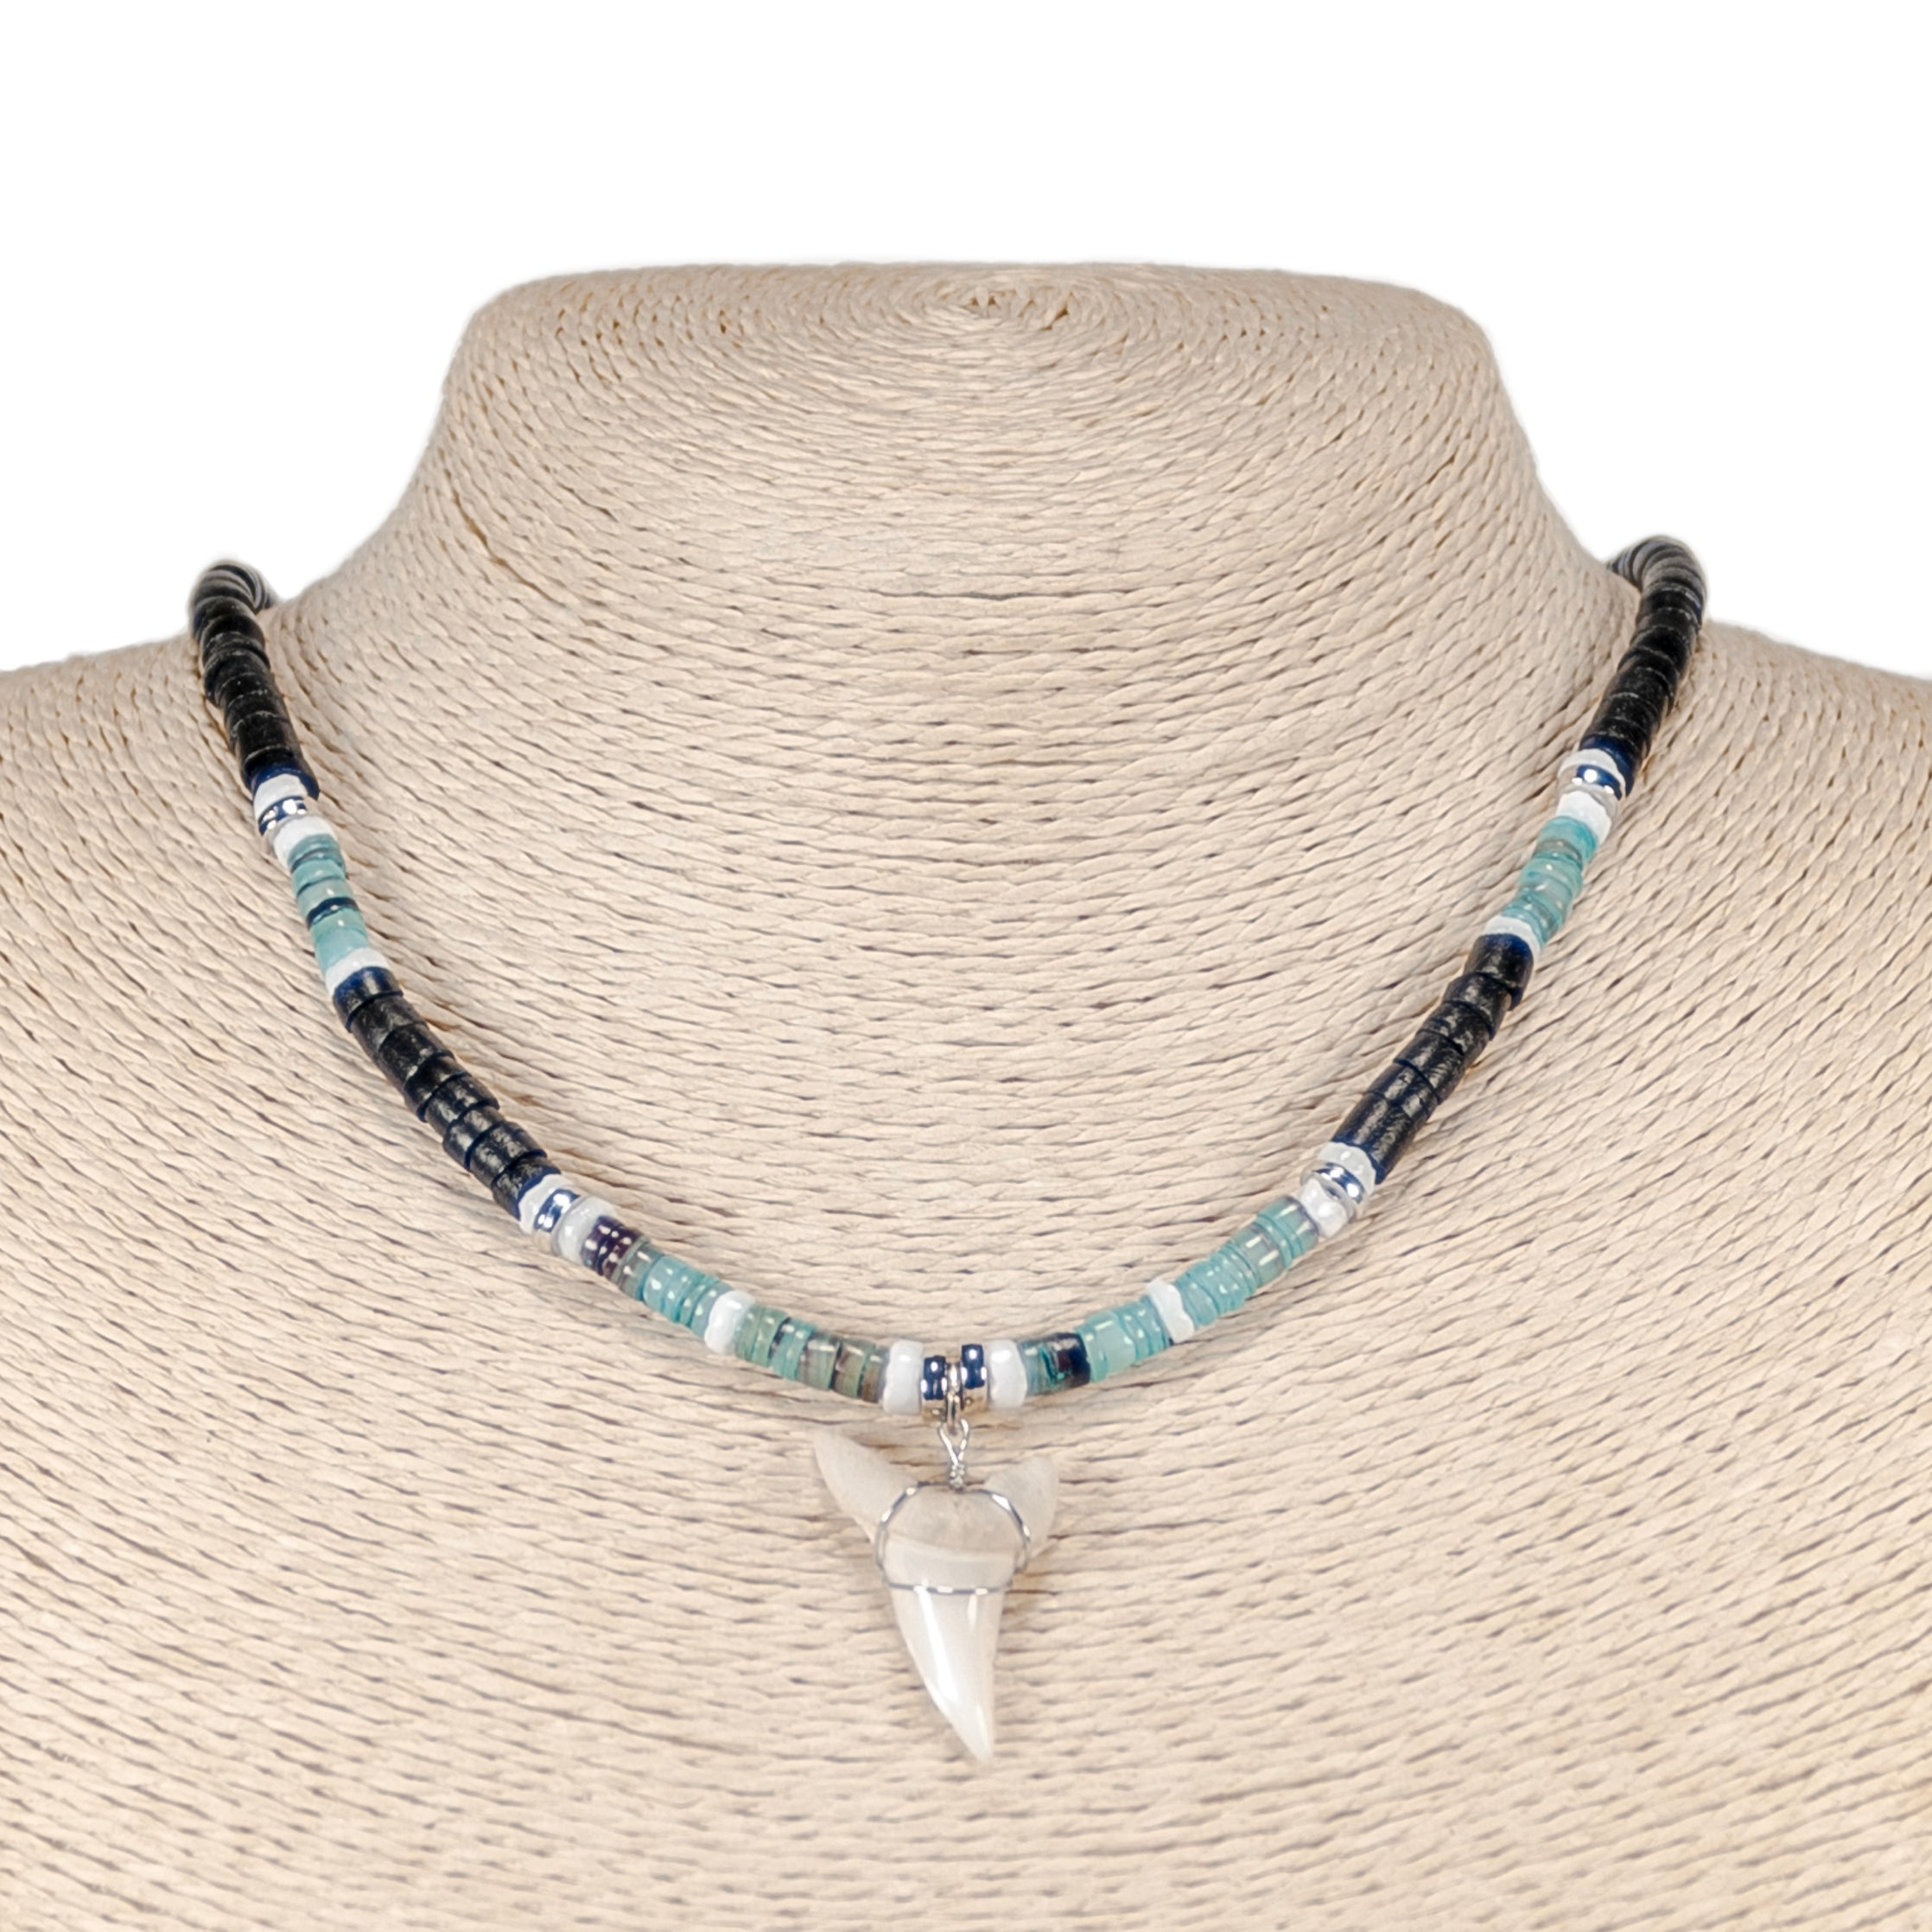 Mako Shark Tooth Pendant on Black Coconut & Green Shell Beads Necklace